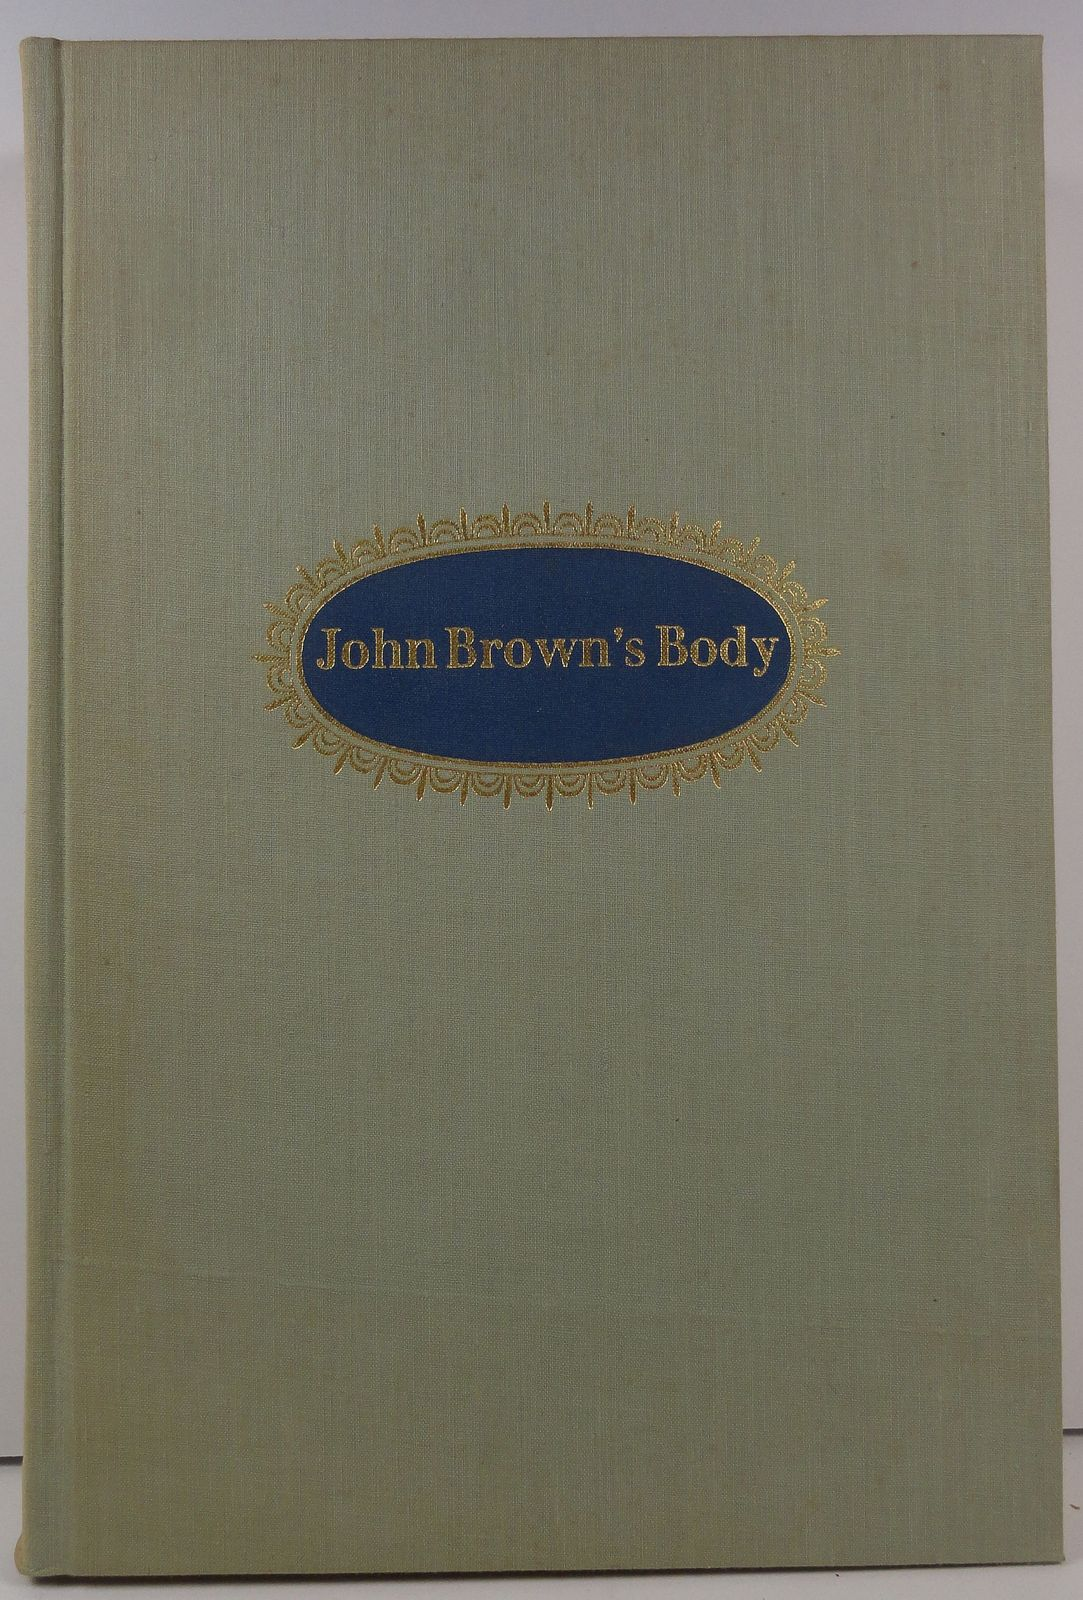 John Brown's Body Stephen Vincent Benet The Heritage Press